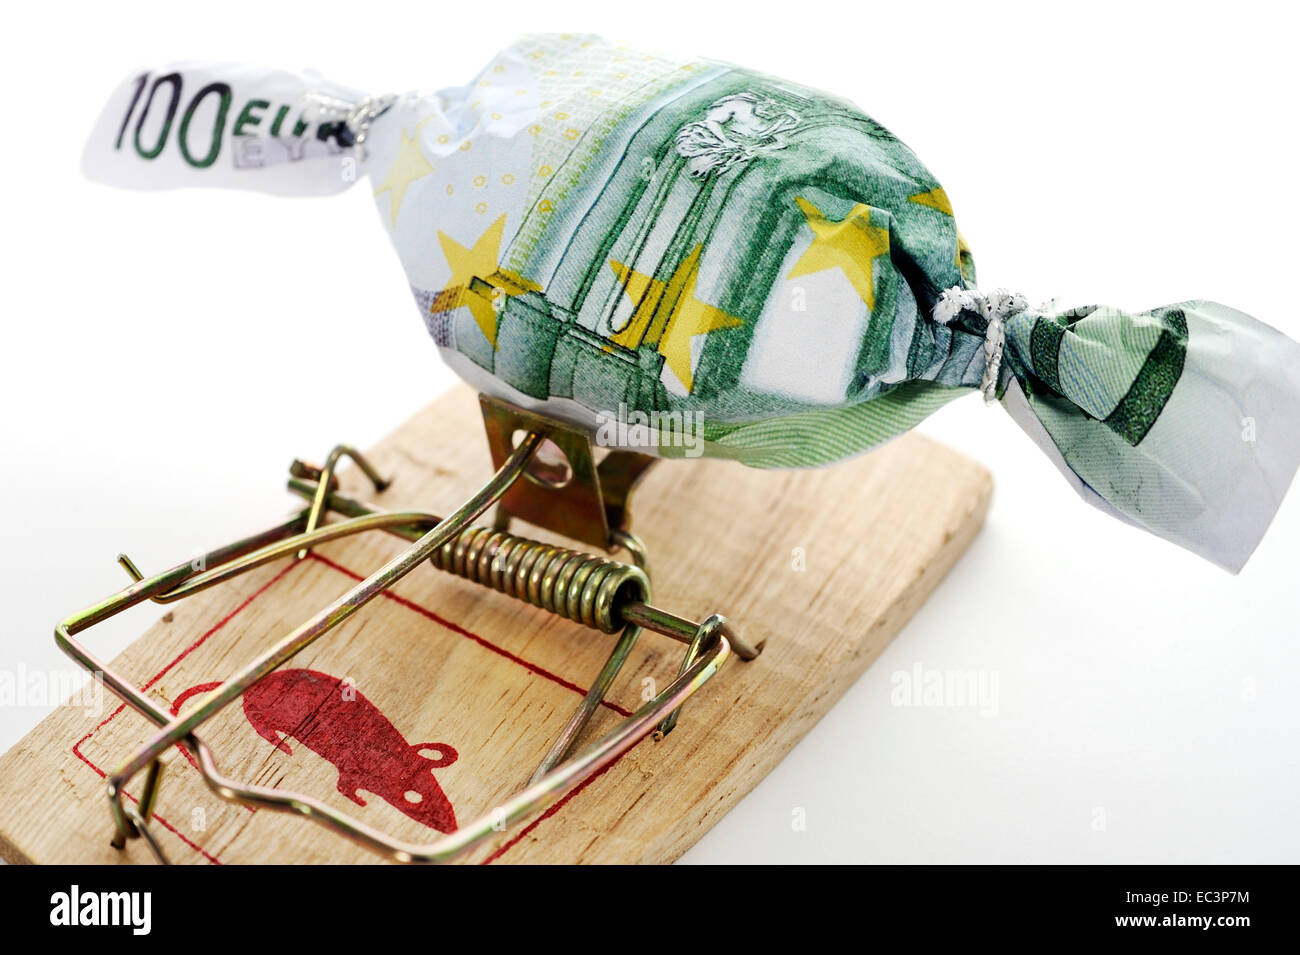 Candy wrapped in banknote and mousetrap, debt entanglement - Stock Image